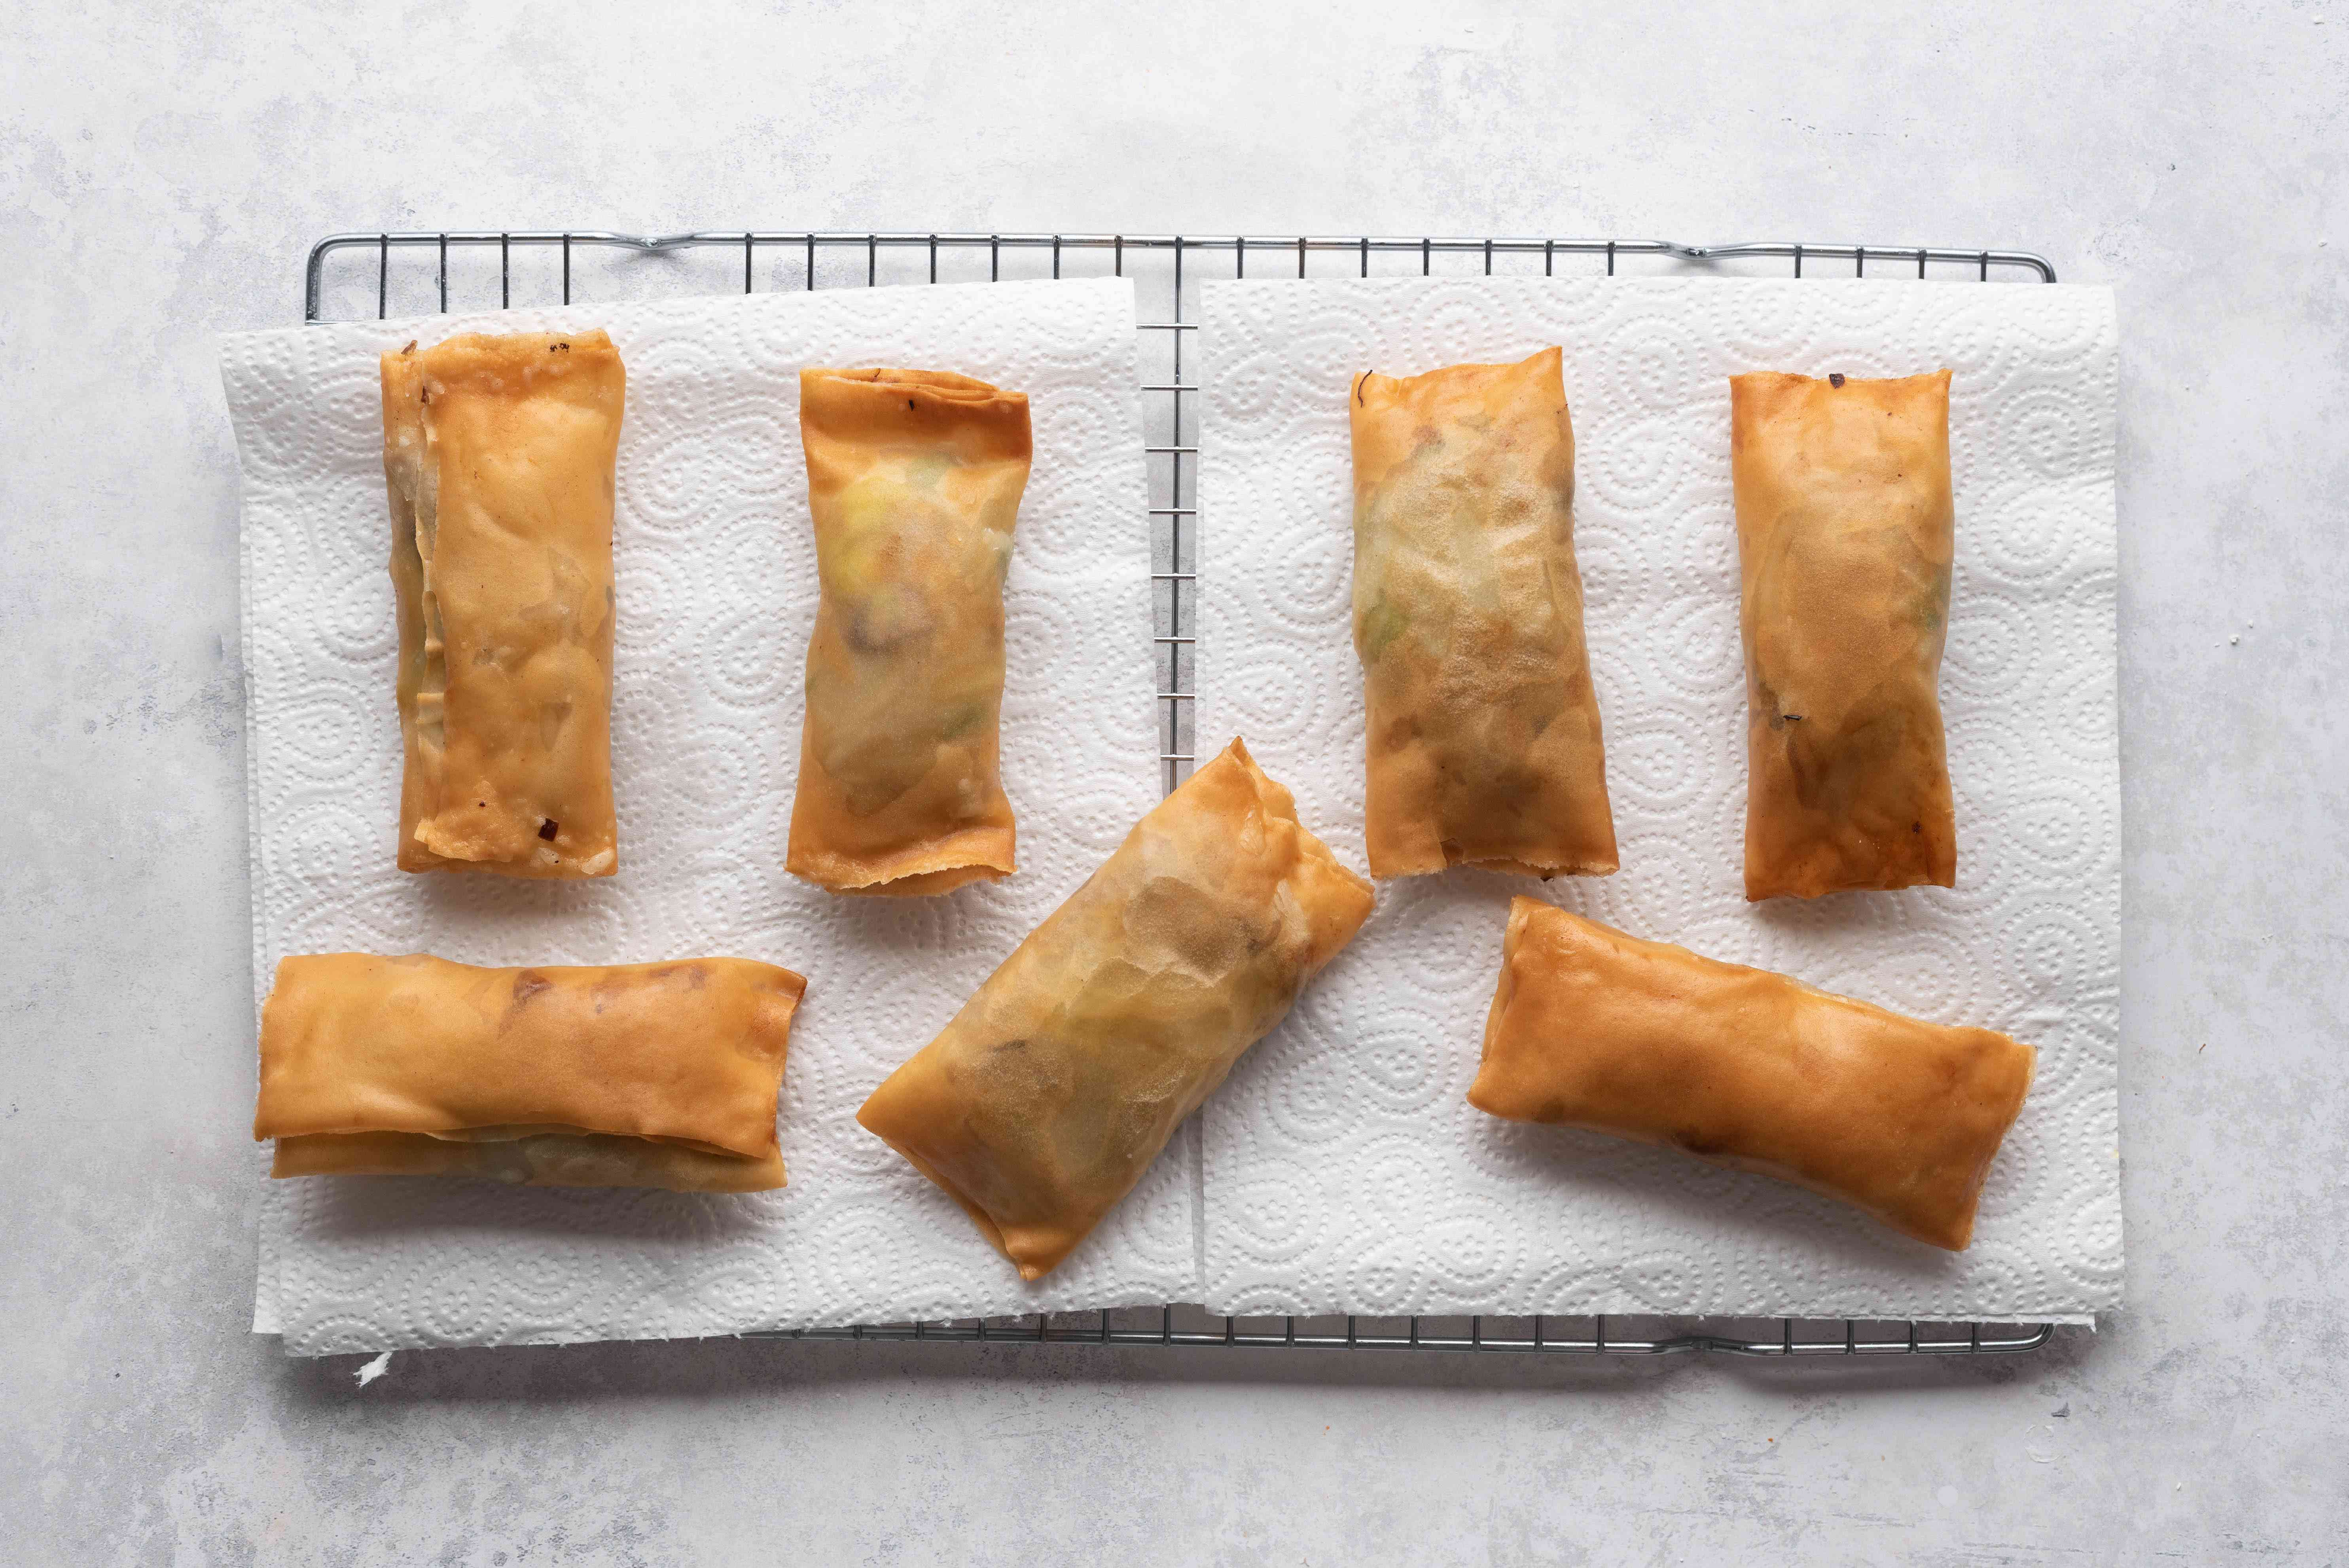 Cooking Chinese Egg Rolls on a cooling rack